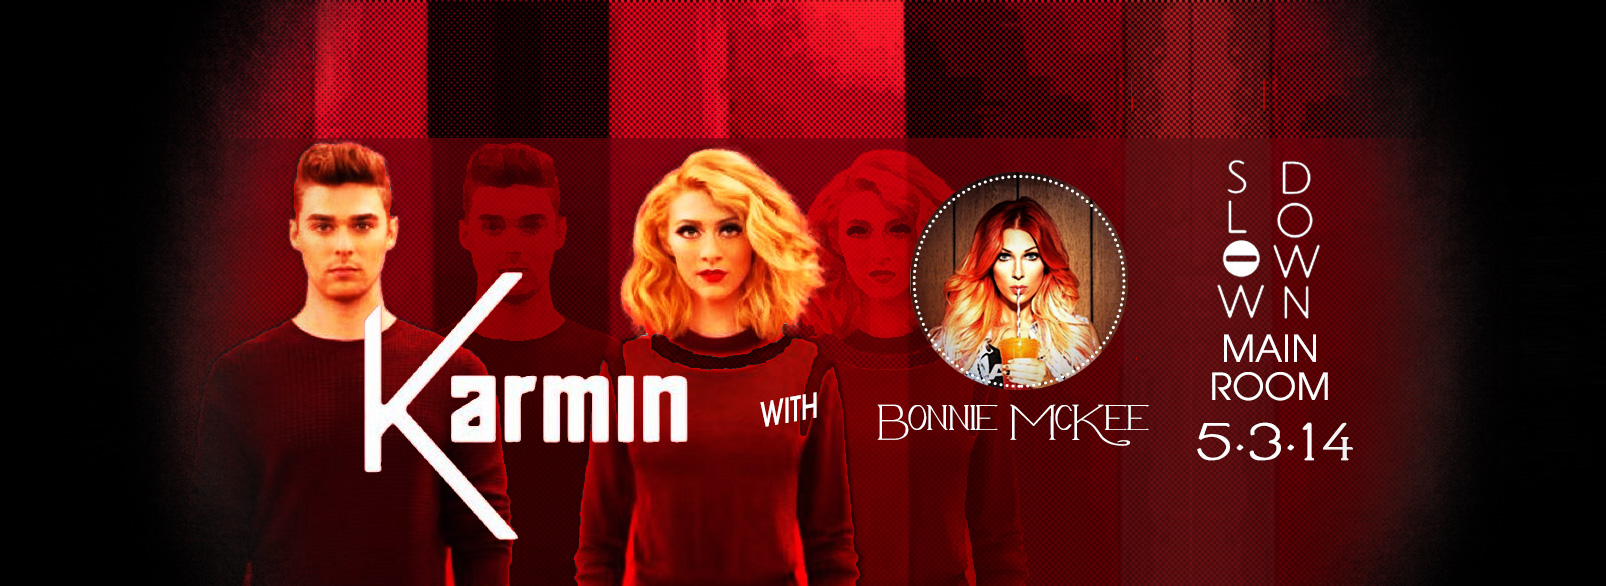 Karmin with Bonnie McKee